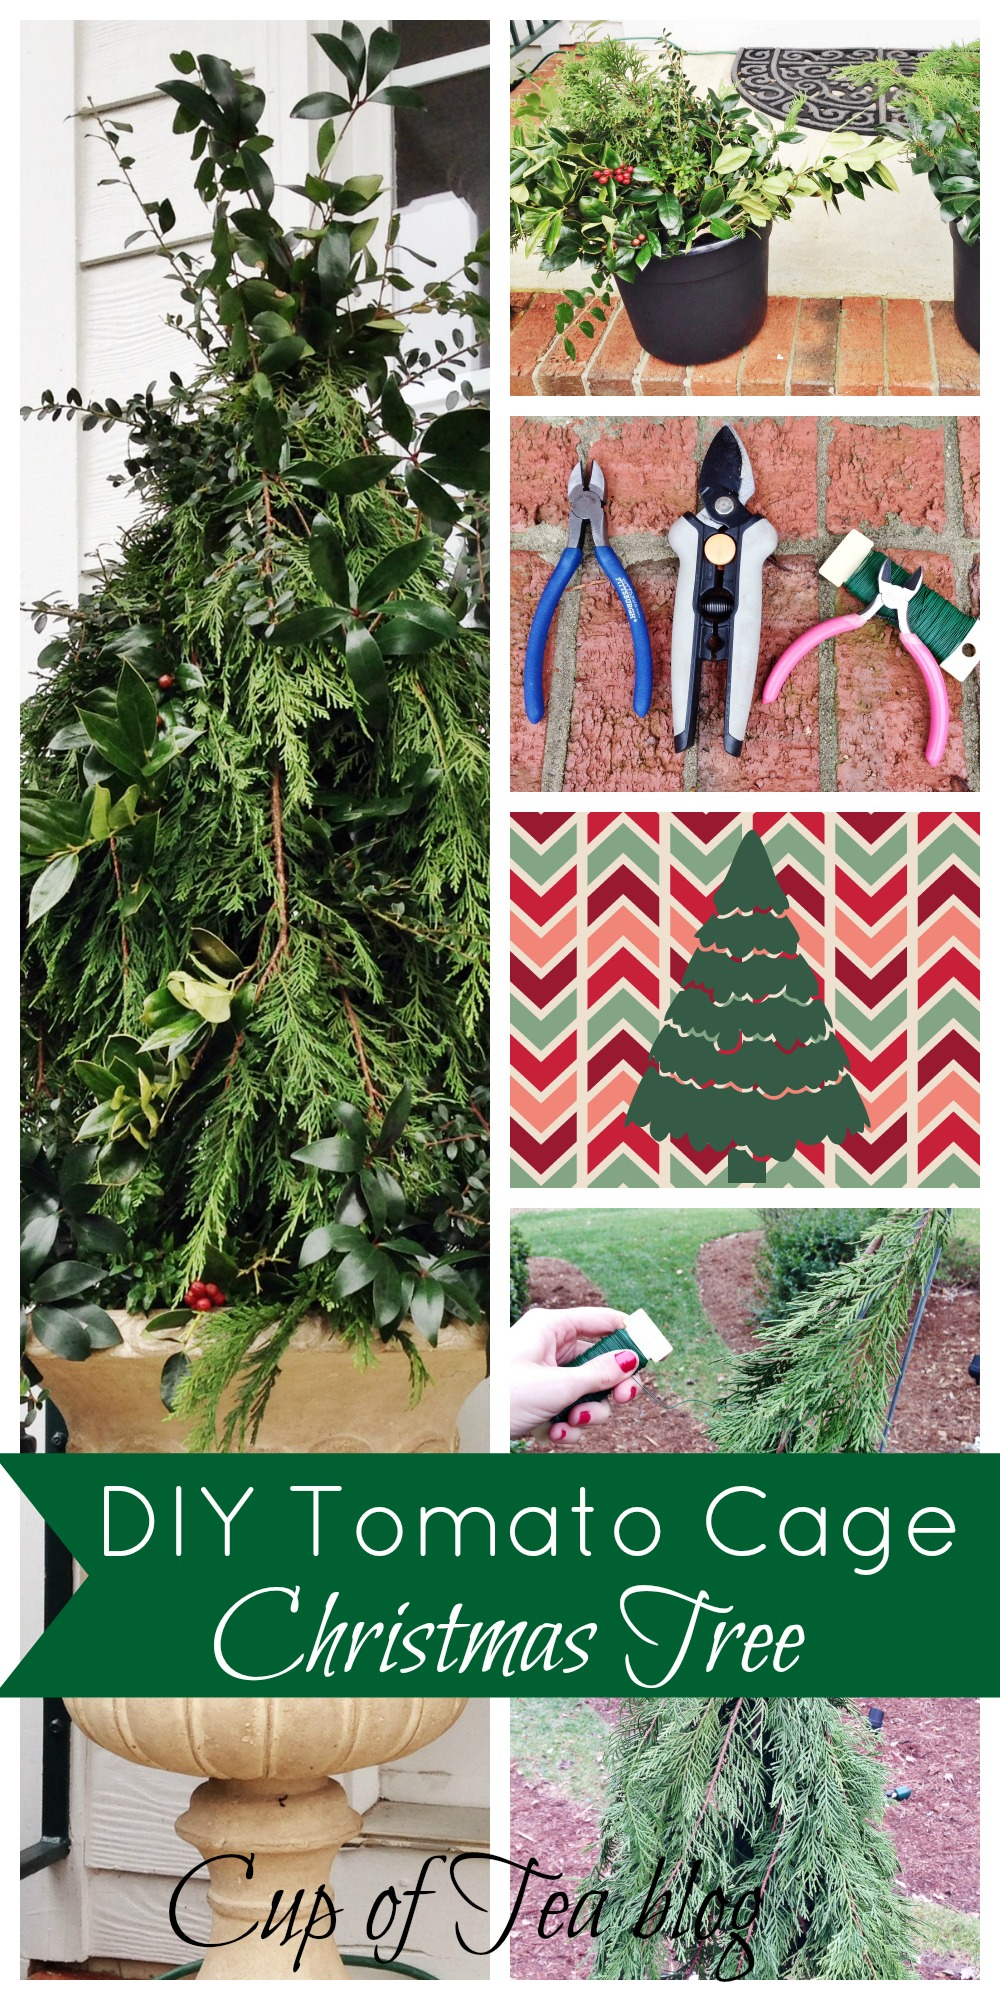 diy tomato cage christmas tree for your front porch from the cup of tea blog - Tomato Cage Christmas Decorations